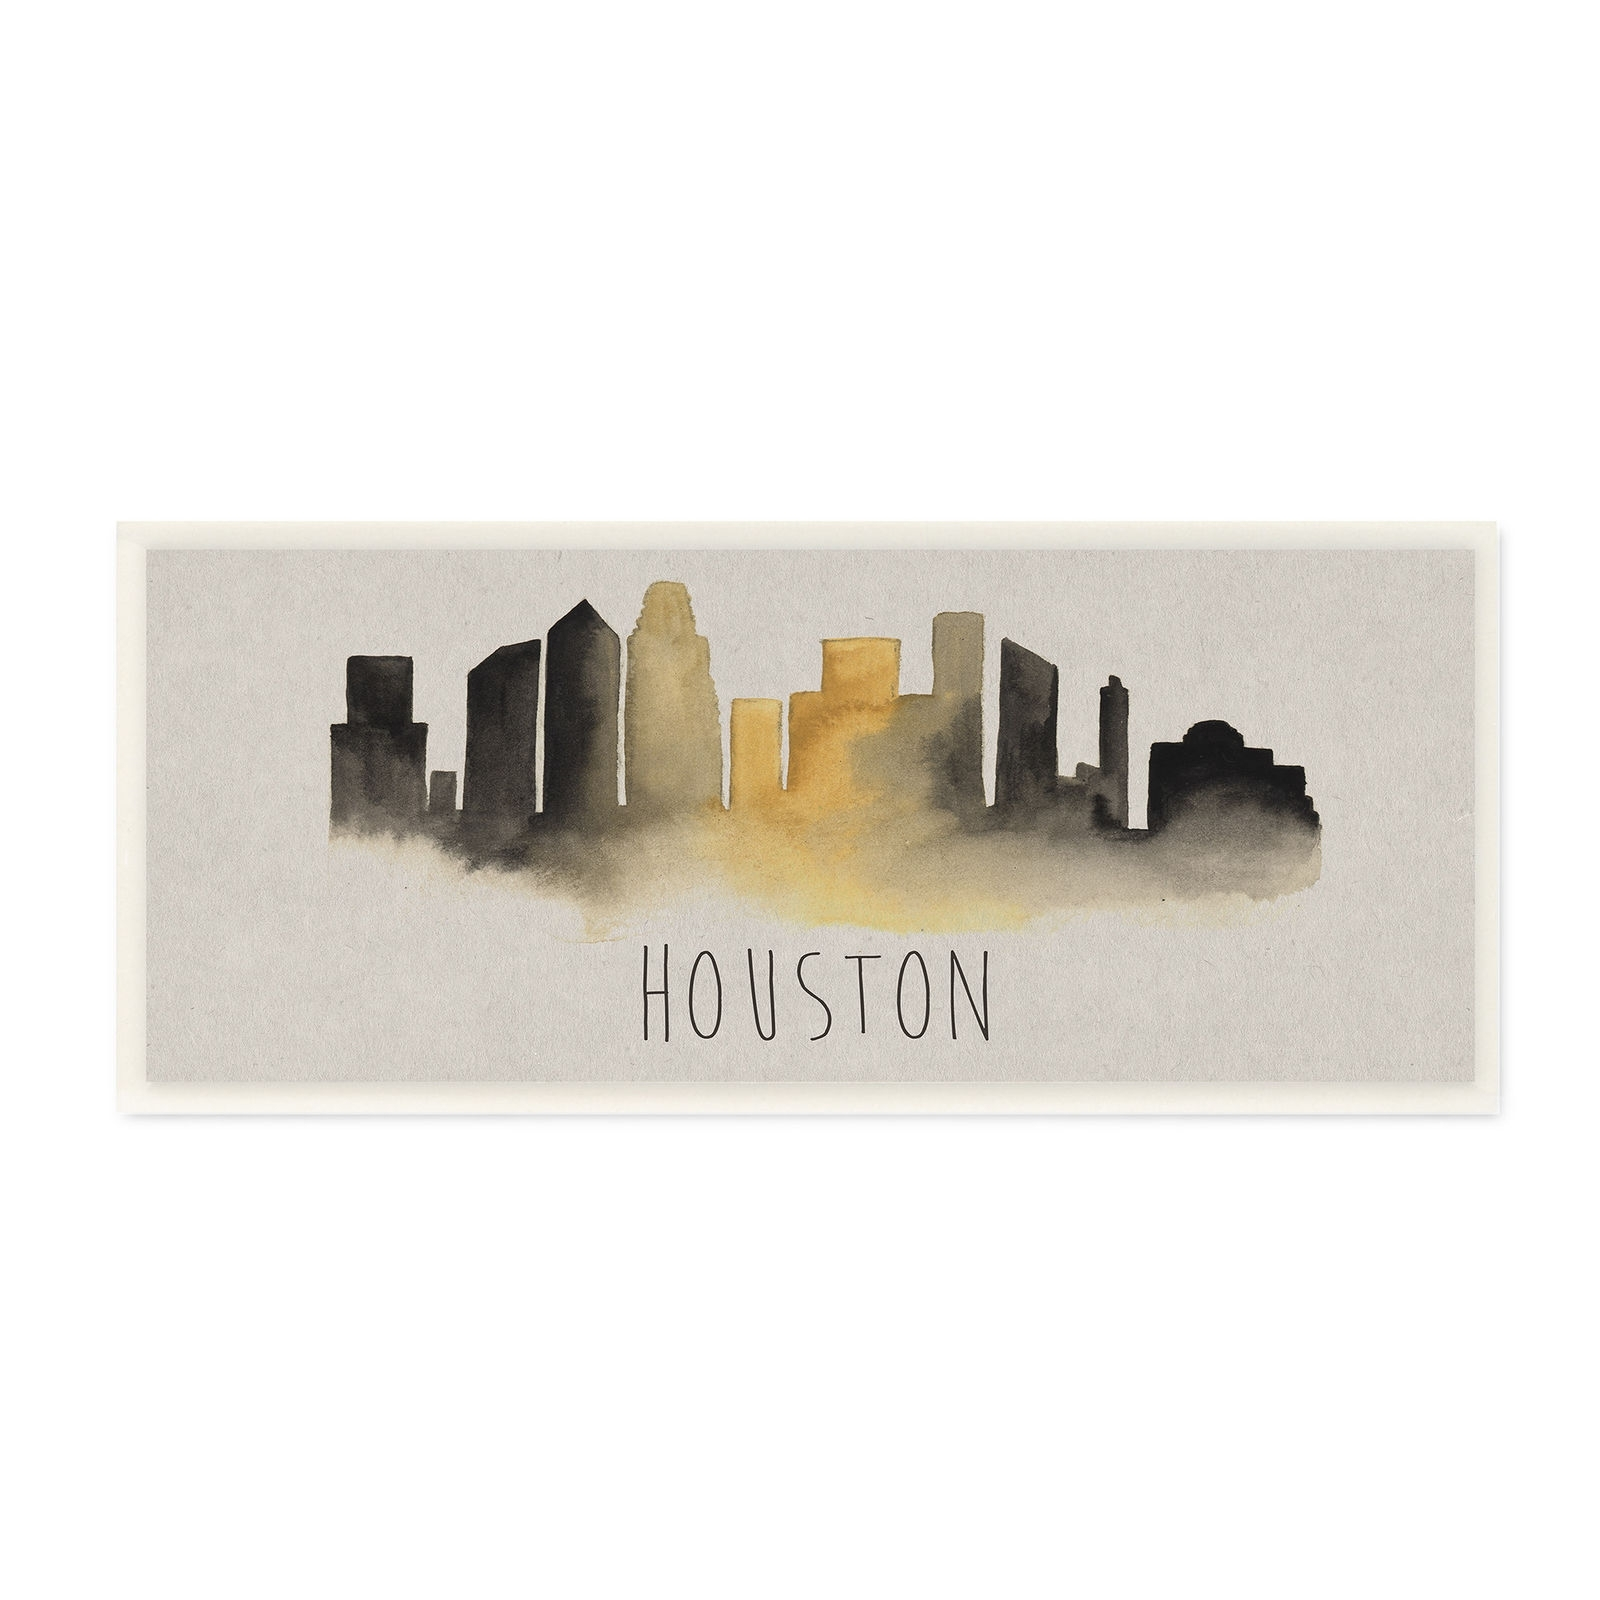 Houston Skyline Silhouette Stretched Canvas Wall Art Id 3455516 | Ebay For Current Houston Canvas Wall Art (View 4 of 15)